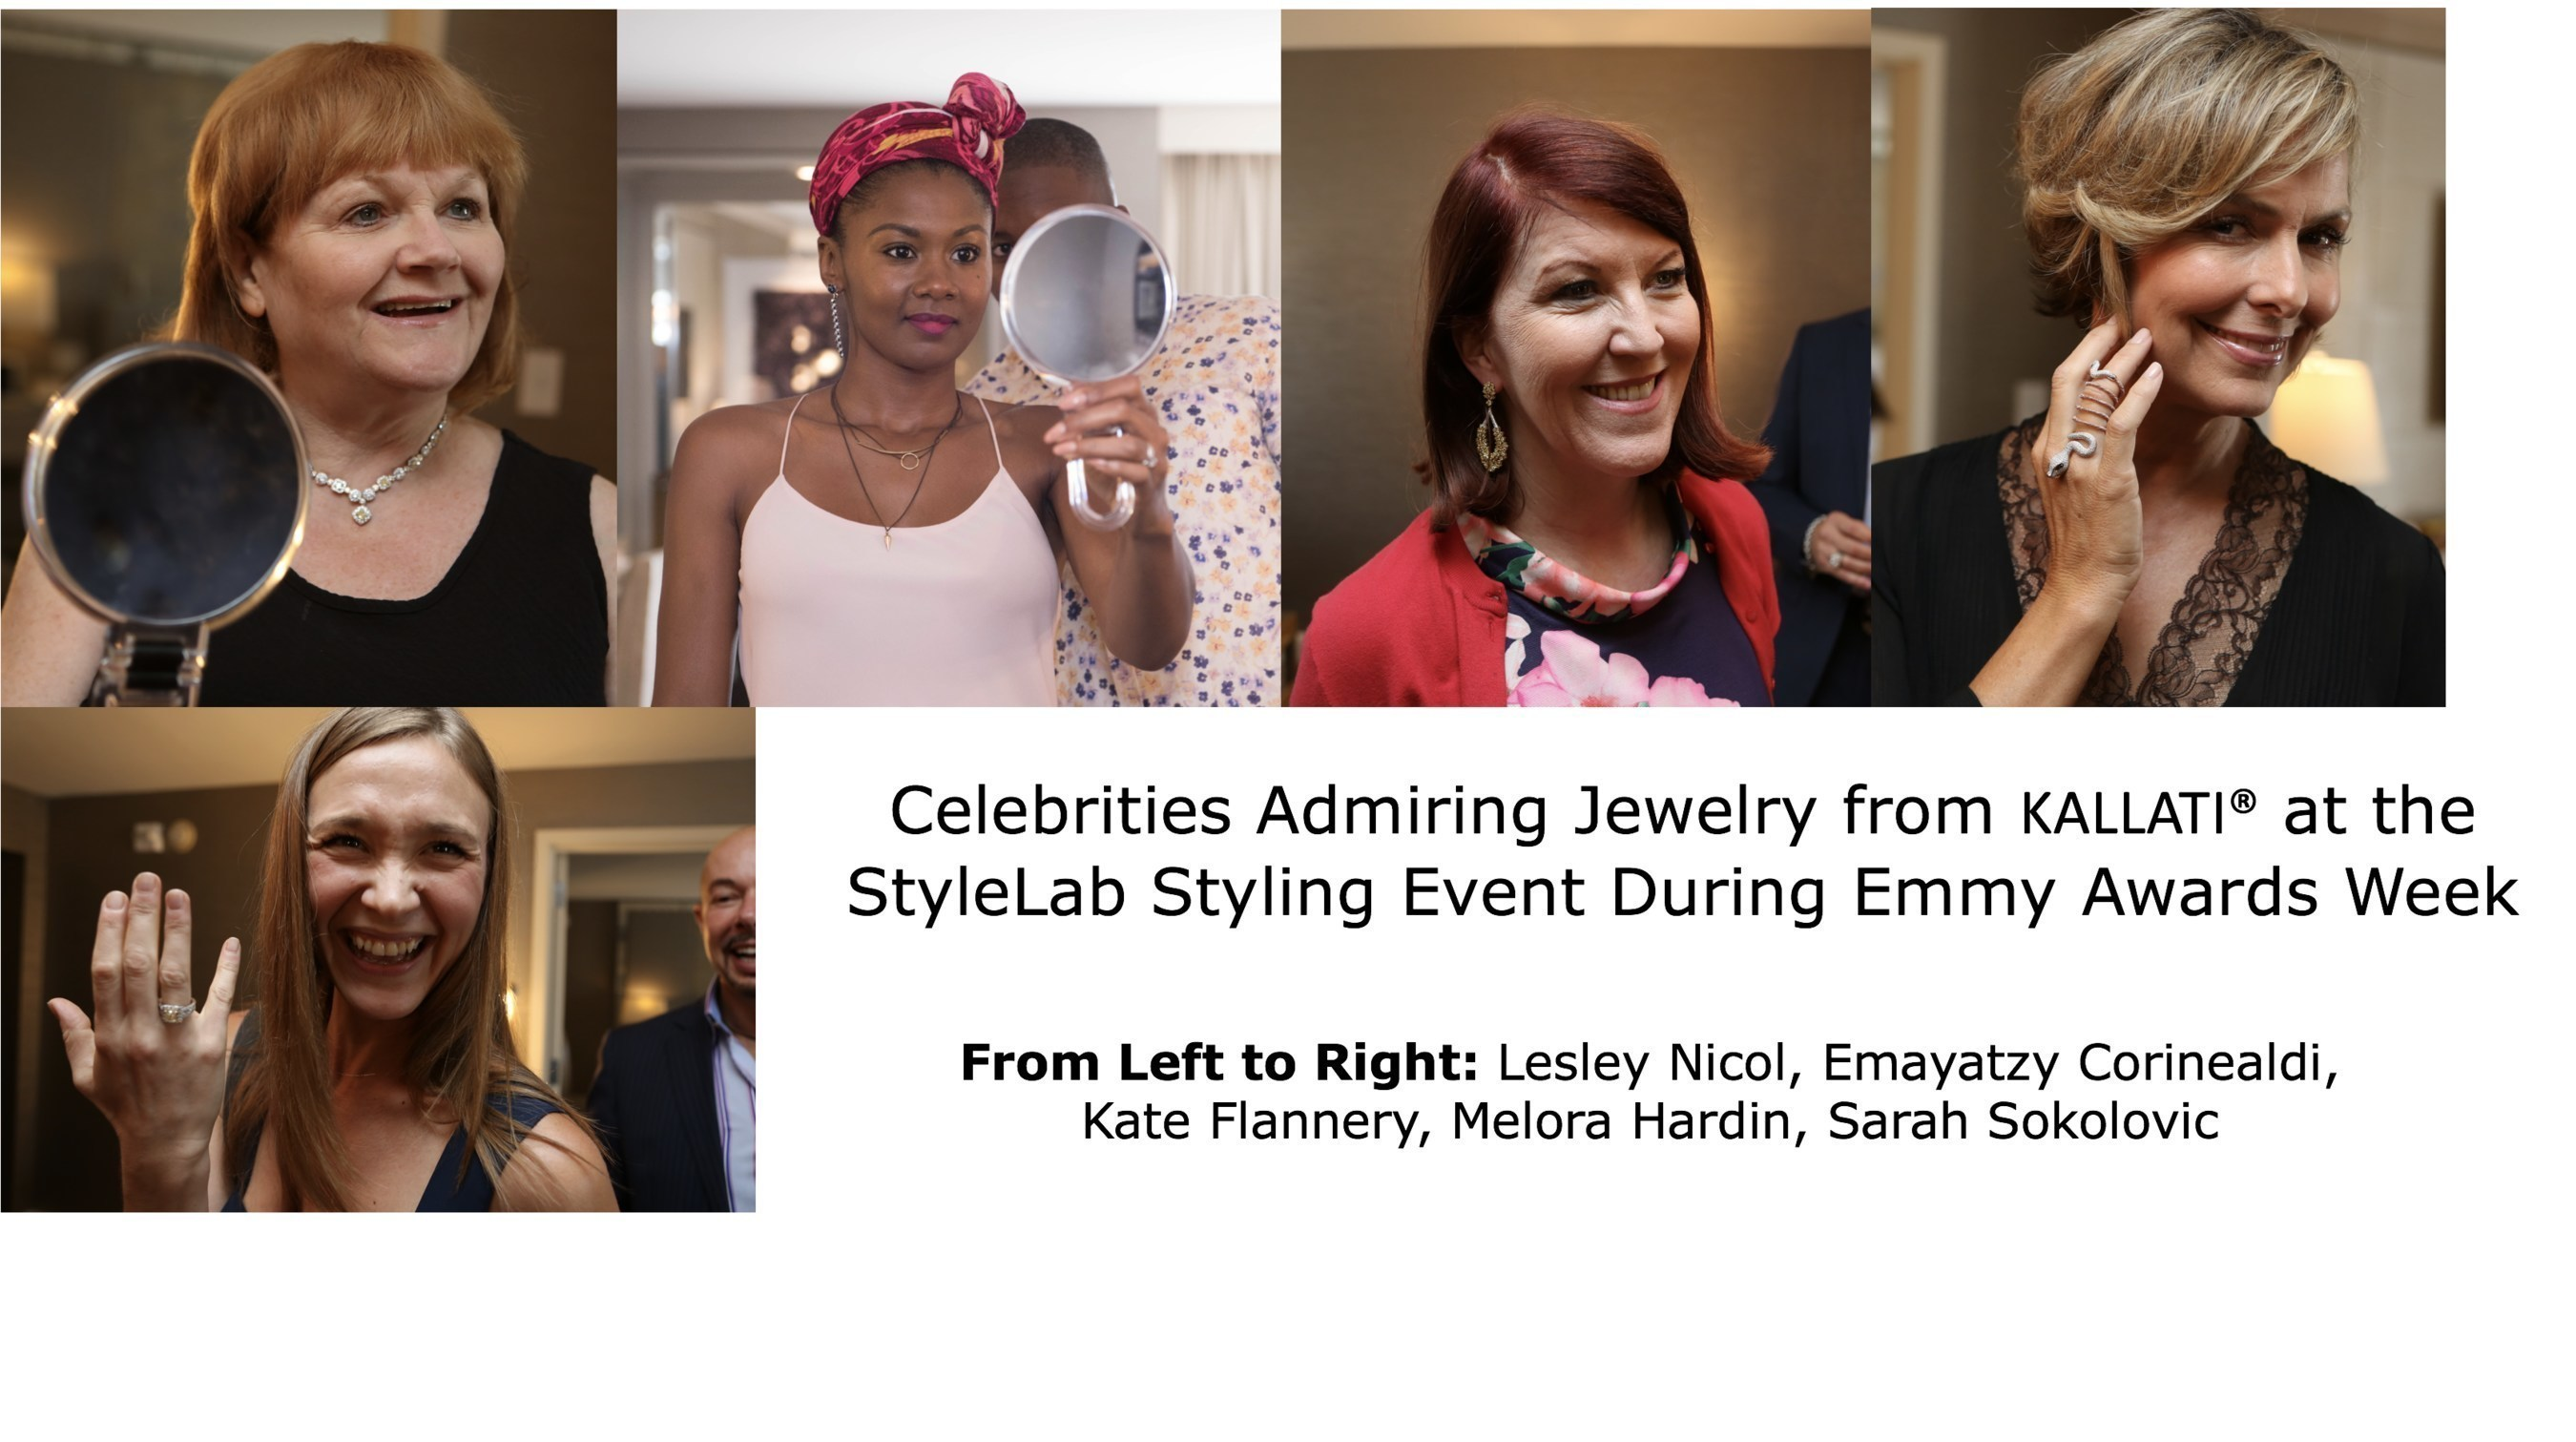 Celebrities Previewed Jewelry From KALLATI' at StyleLab's Styling Event During Emmy Awards Week